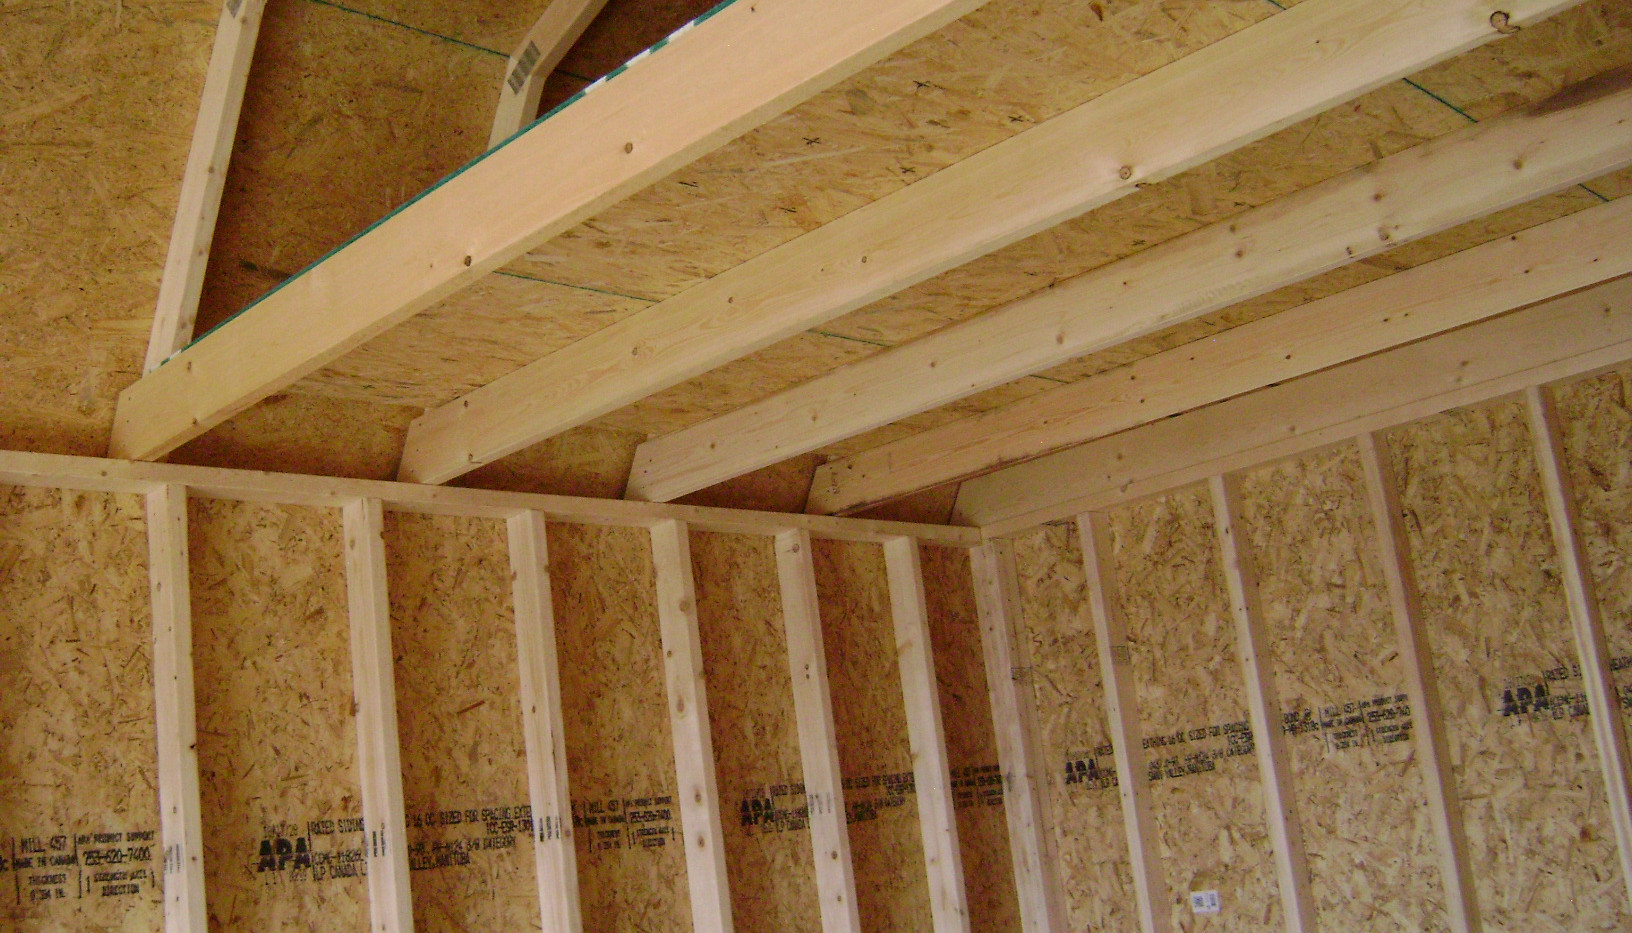 Lofted Barn - PLB-8770-1220-120720 (4).J